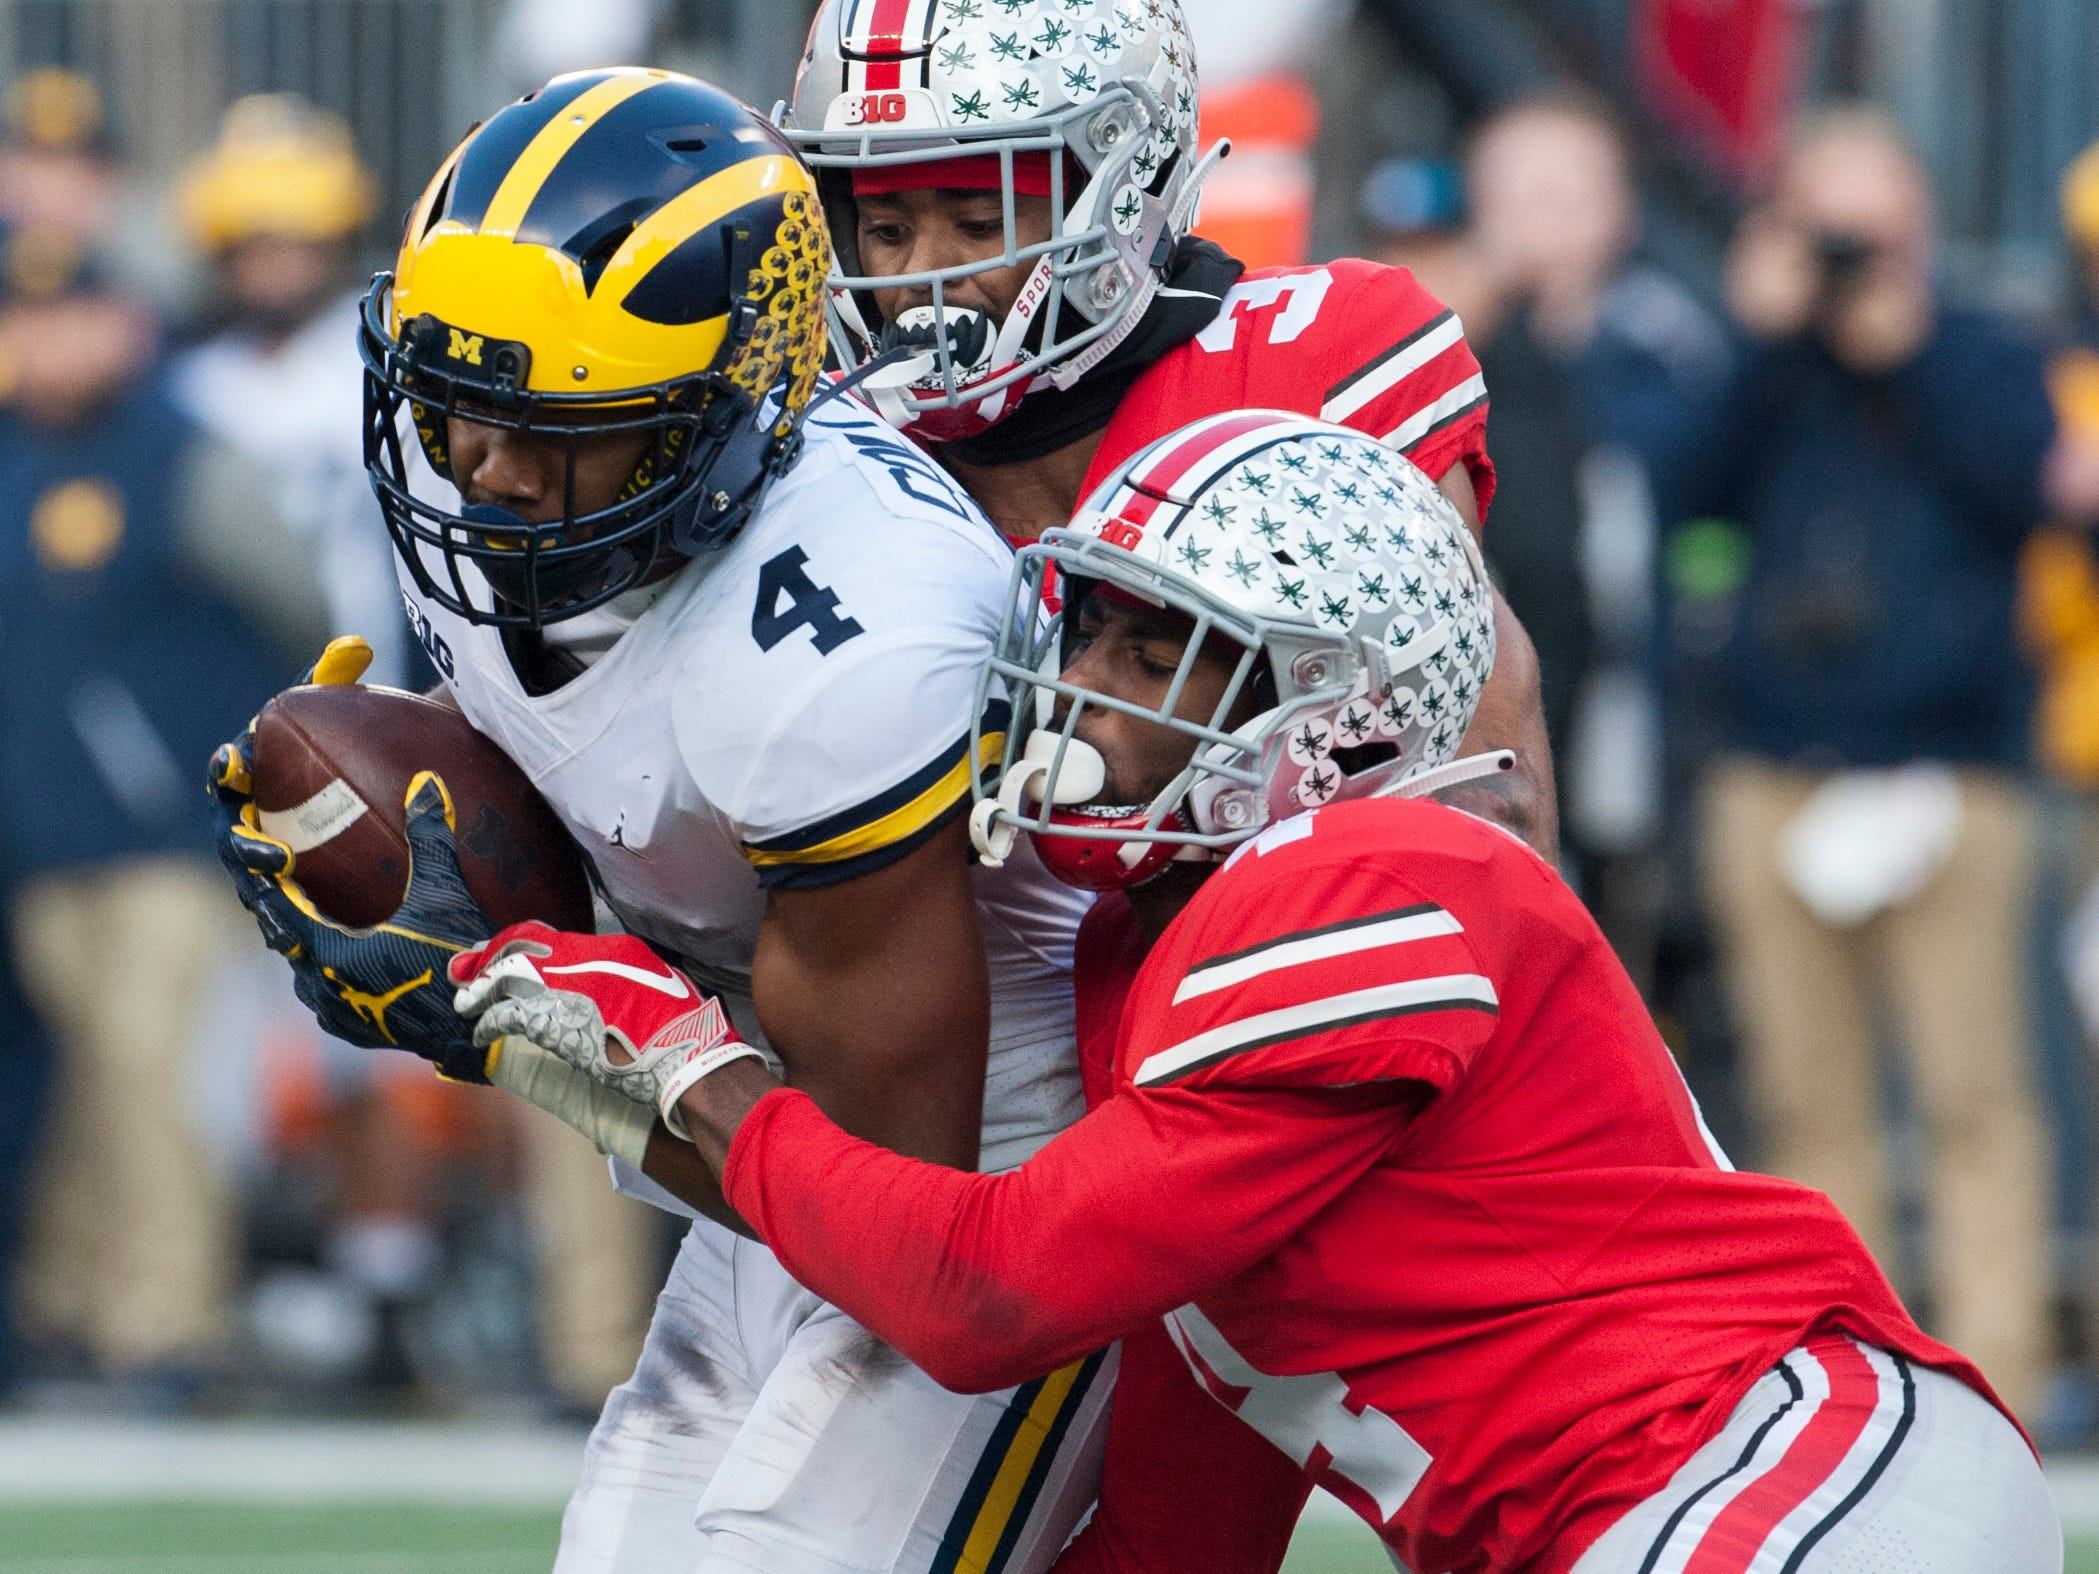 Go through the gallery to see the final Detroit News Big Ten Power Rankings for the 2018 season, compiled by Matt Charboneau.